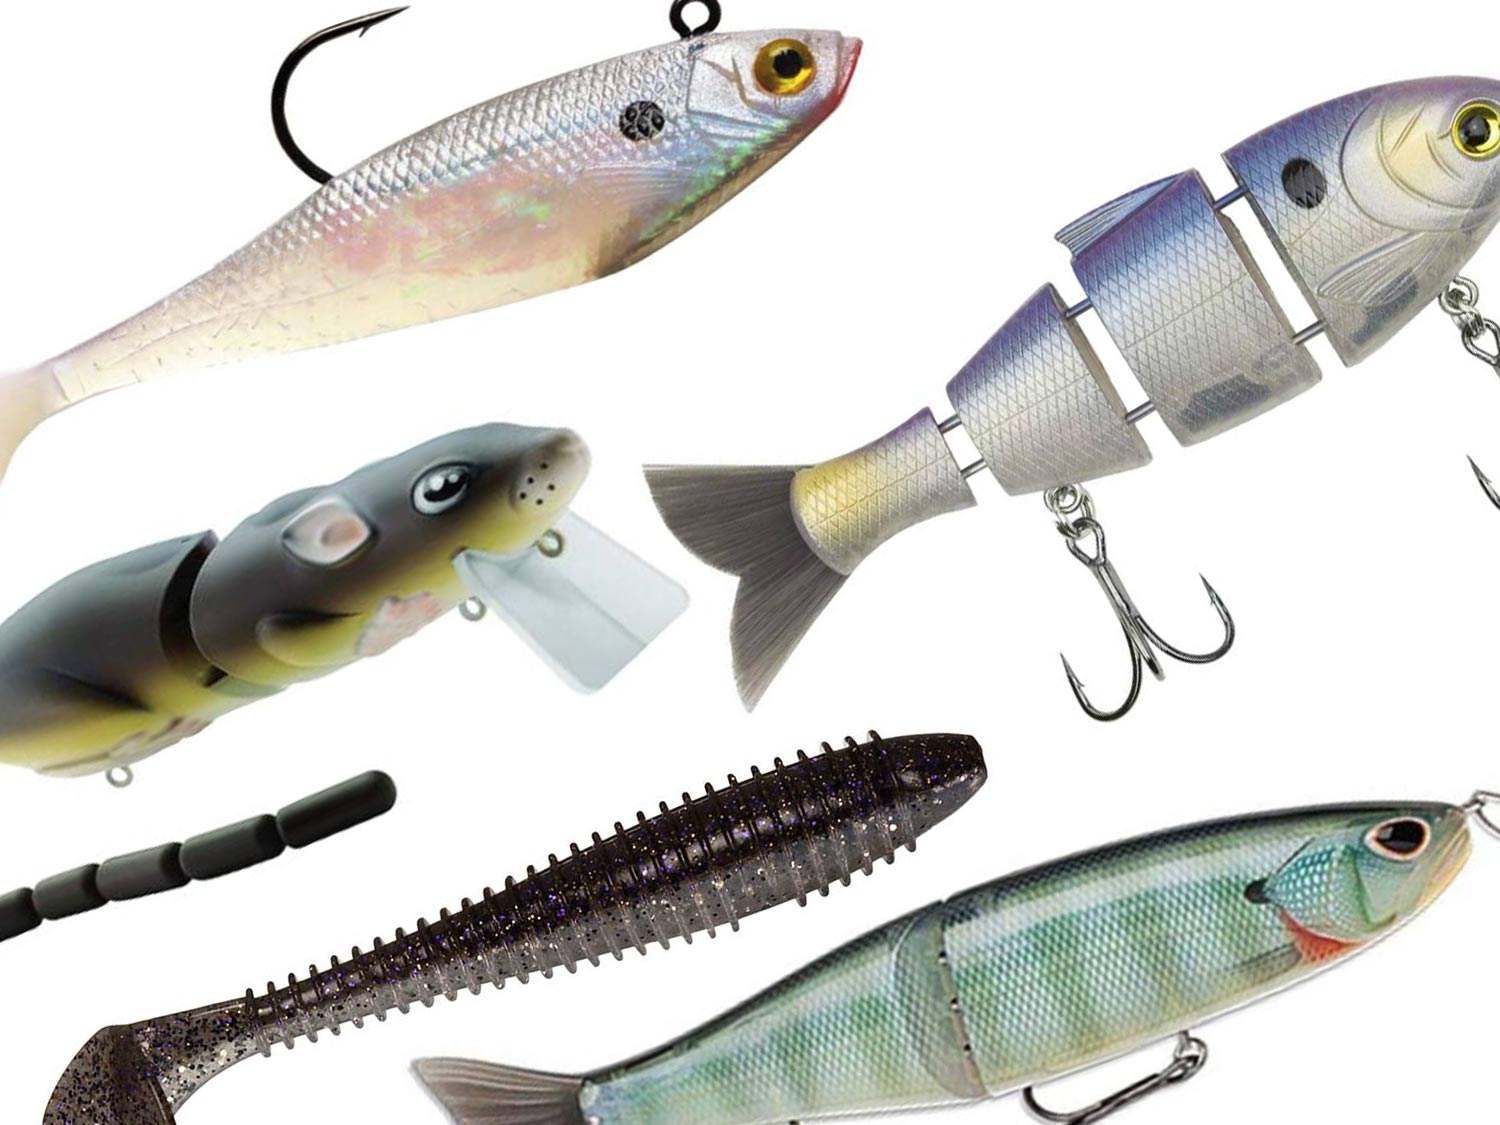 A collection of Swimbait fishing lures.